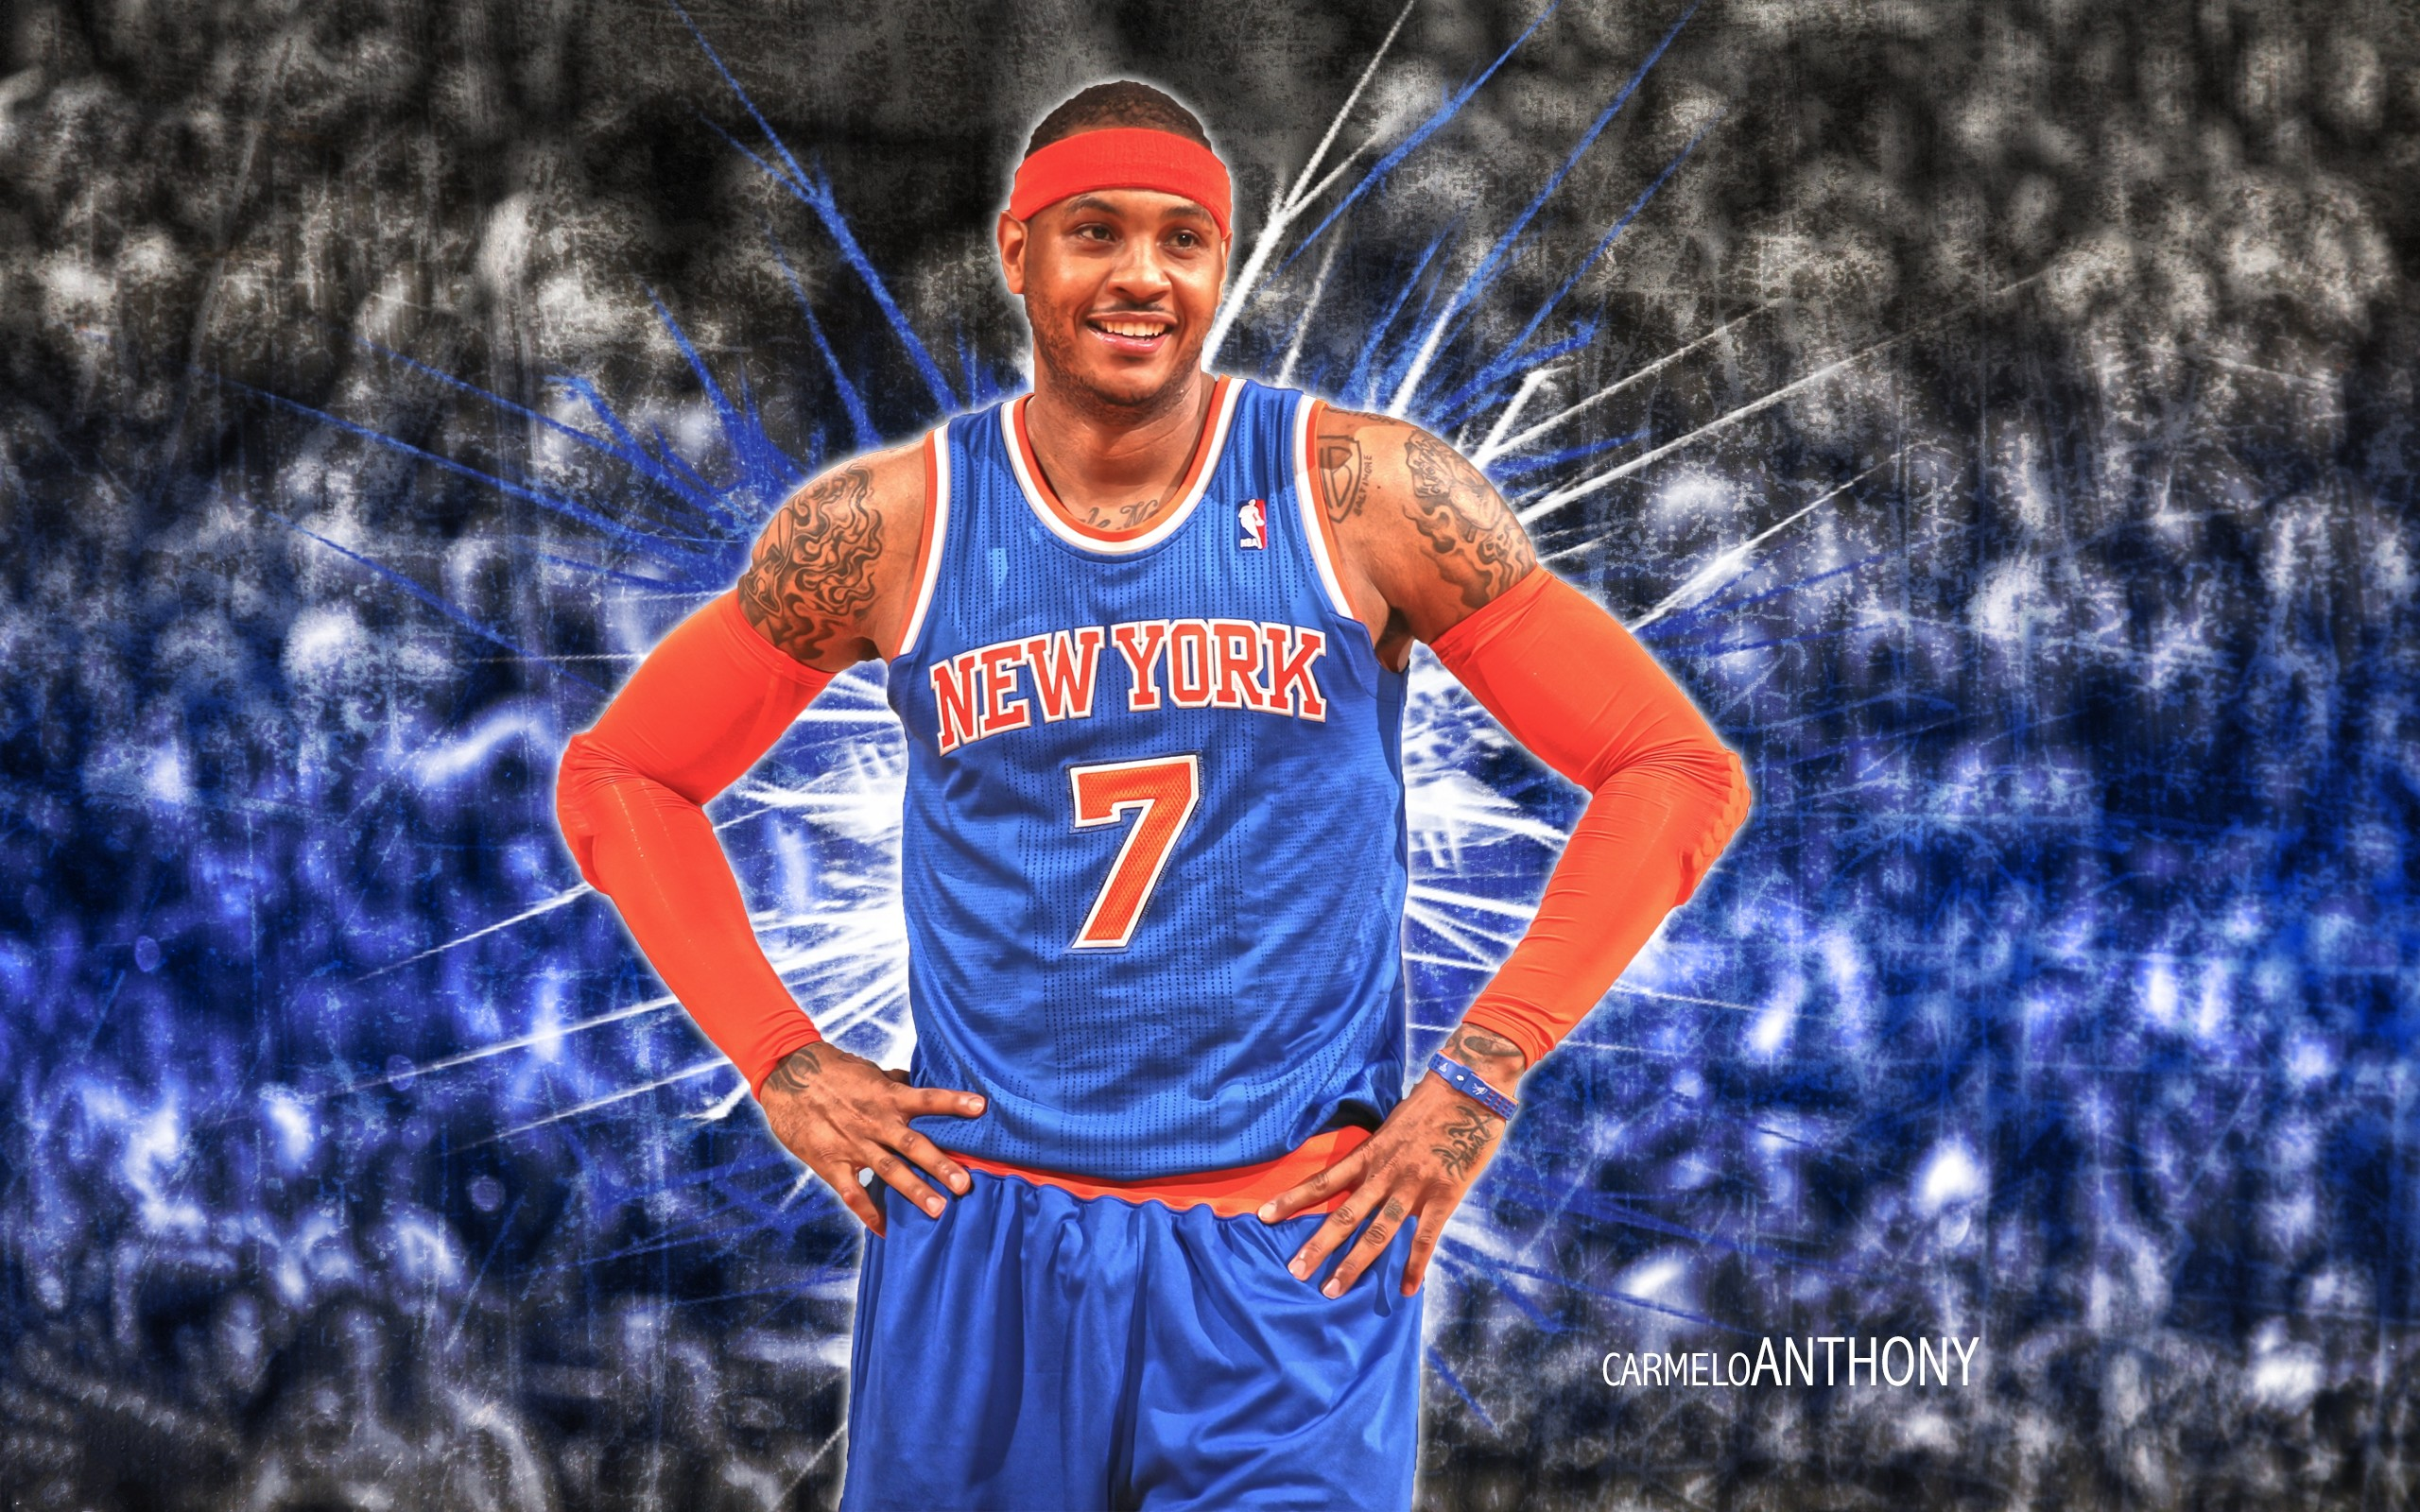 carmelo anthony wallpaper 2018 hd 69 images